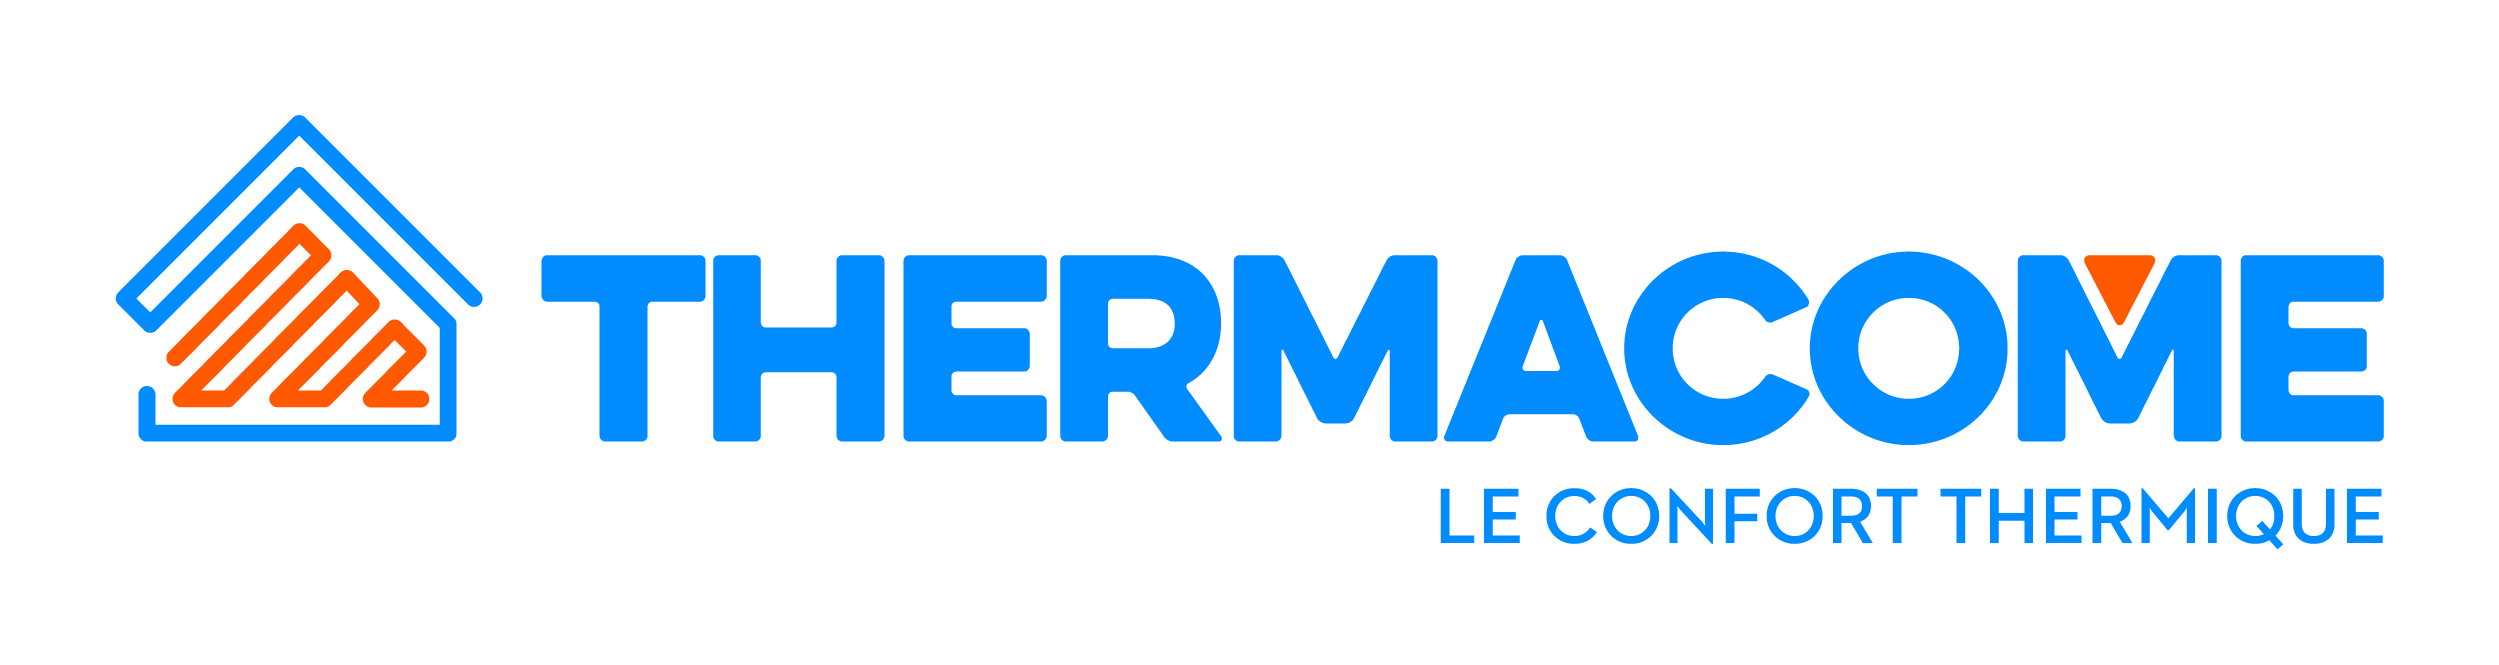 Thermacome - Le confort thermique